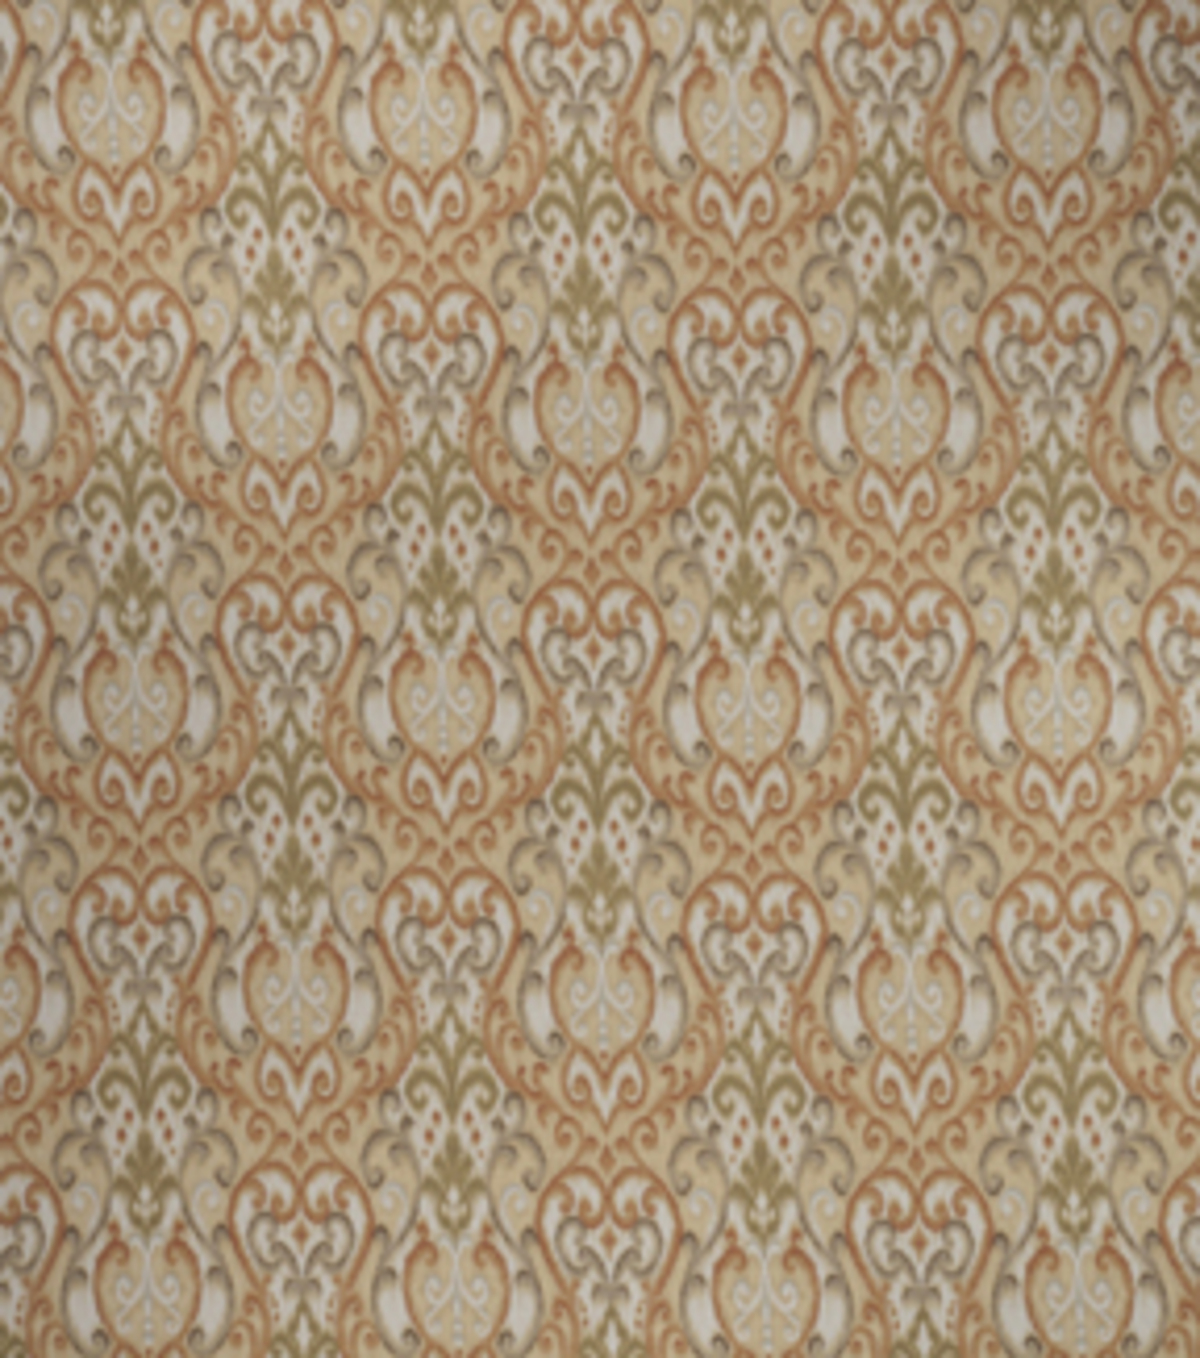 Home Decor 8\u0022x8\u0022 Fabric Swatch-SMC Designs Telescope Chamomile